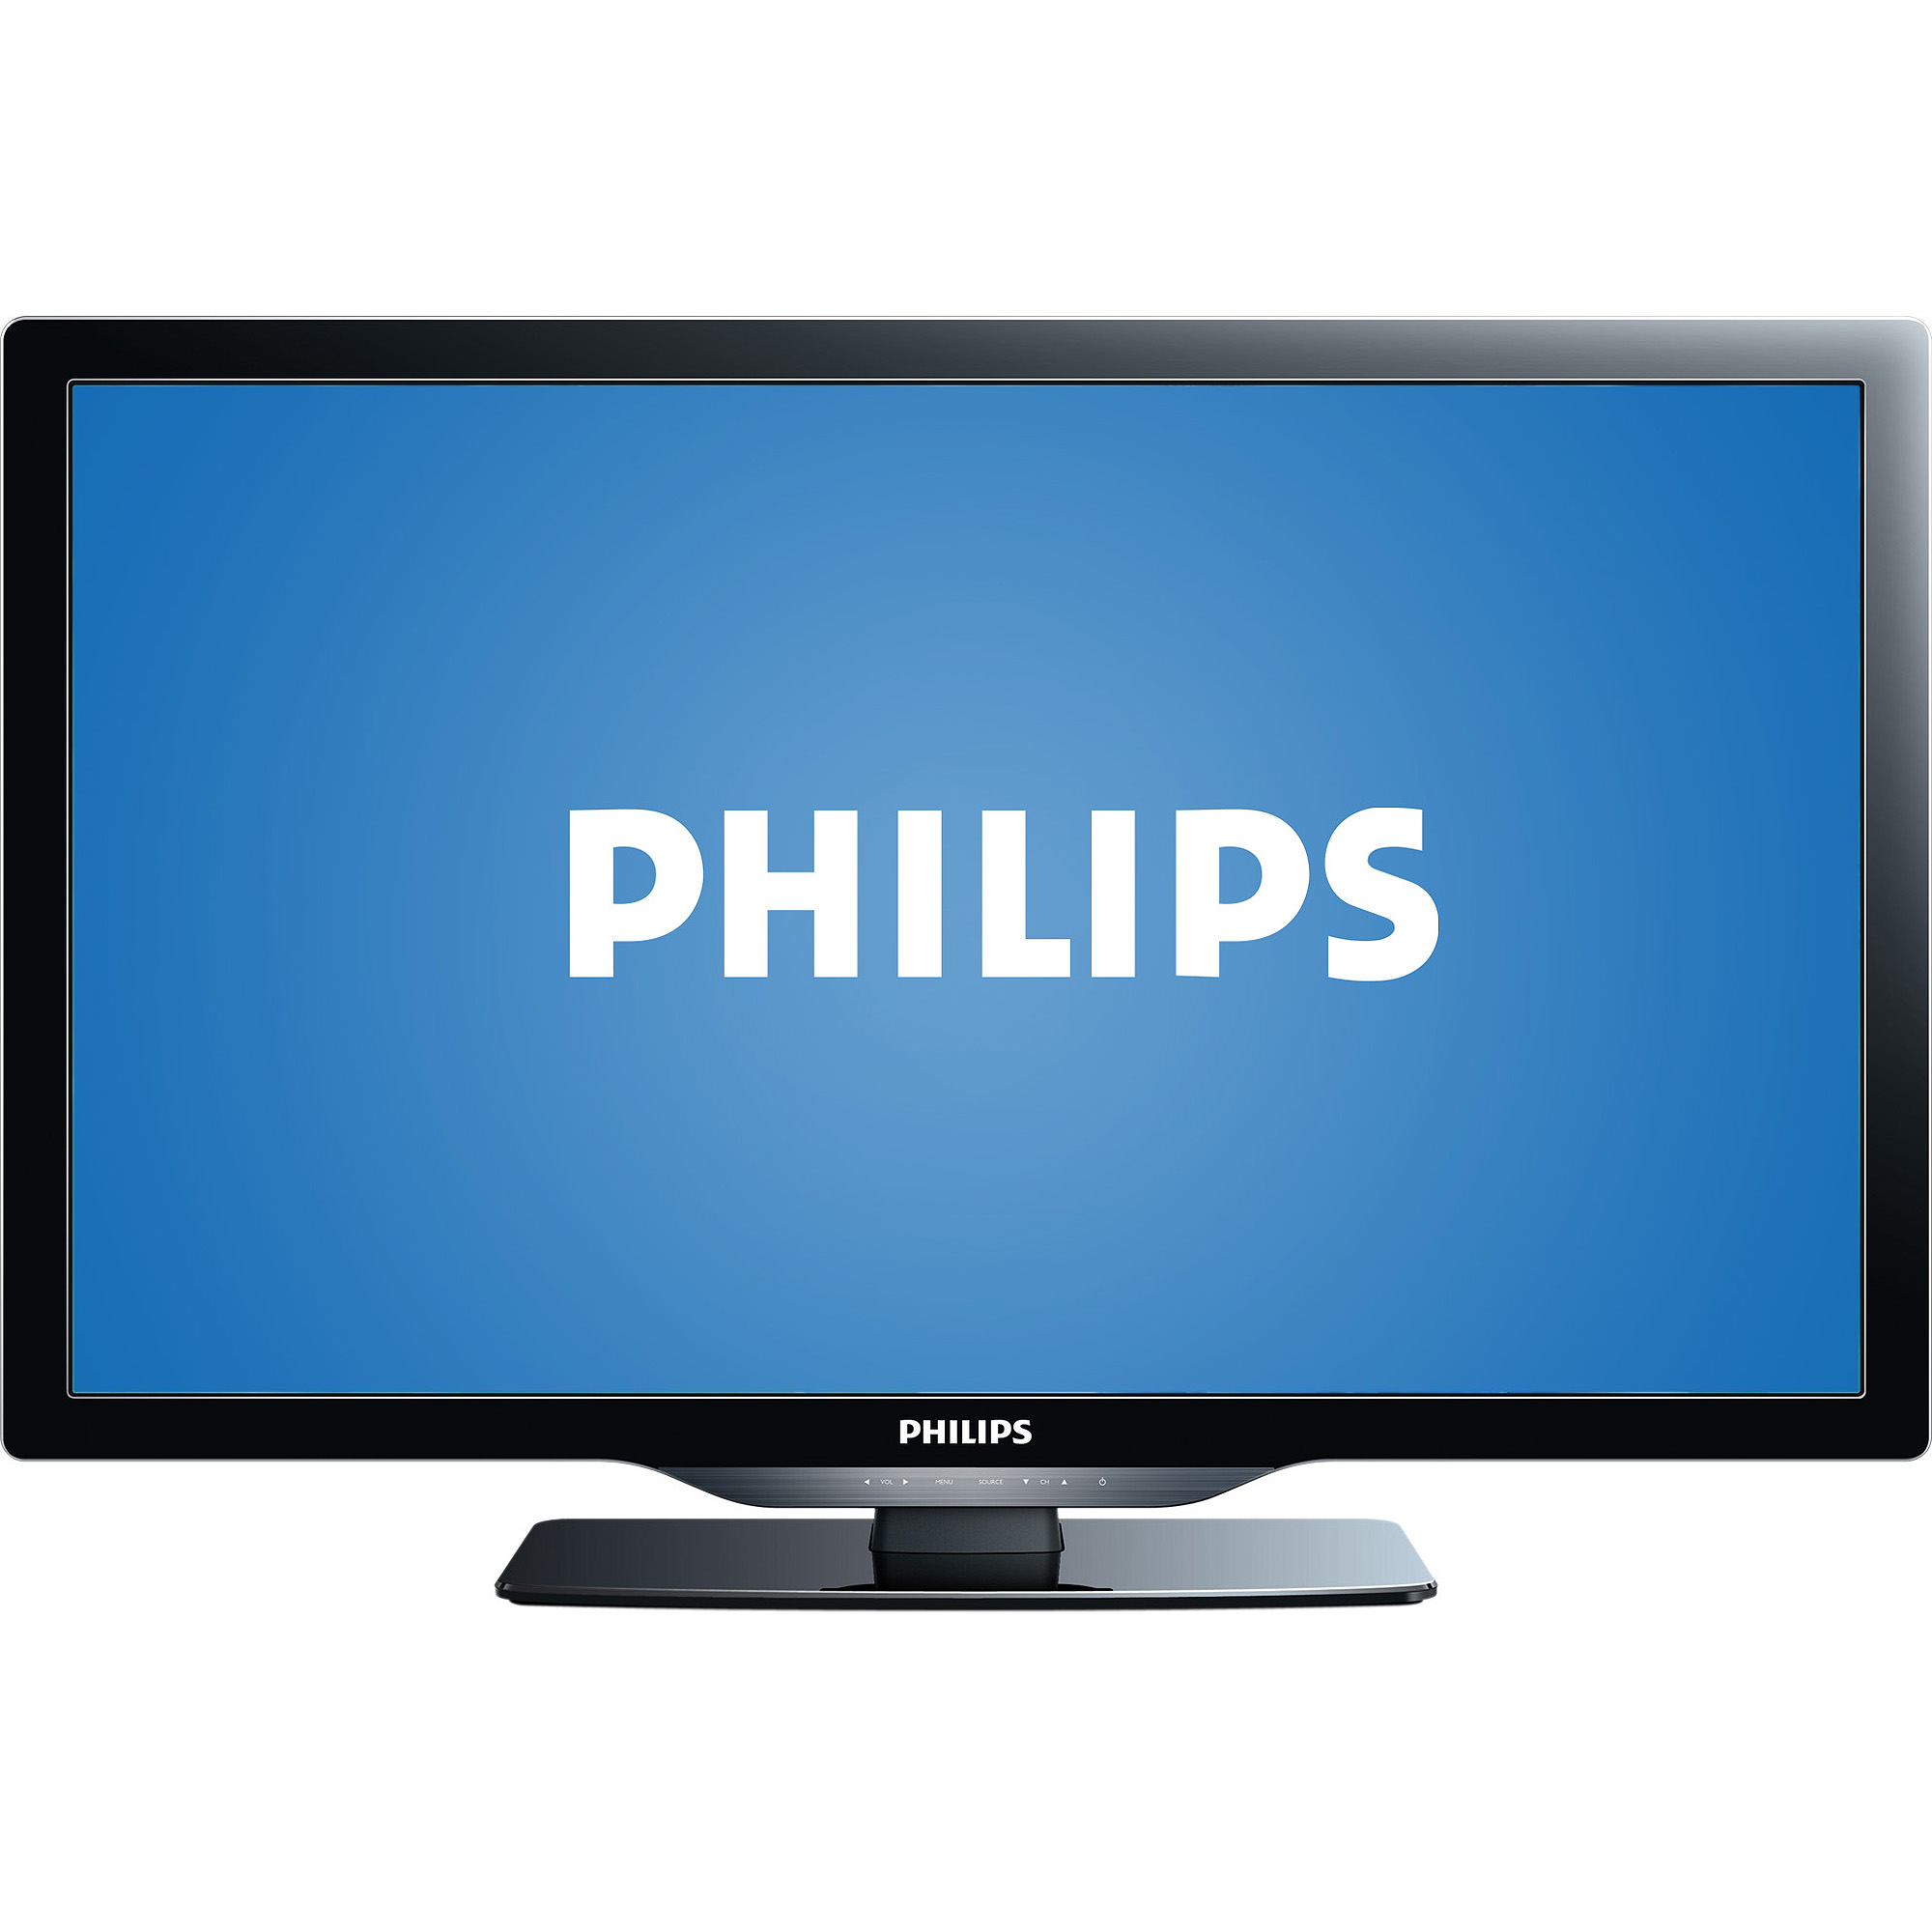 "Philips 22"" Class LED 720p 60Hz HDTV(2.11"" ultra-slim), 22PFL4507/F7"